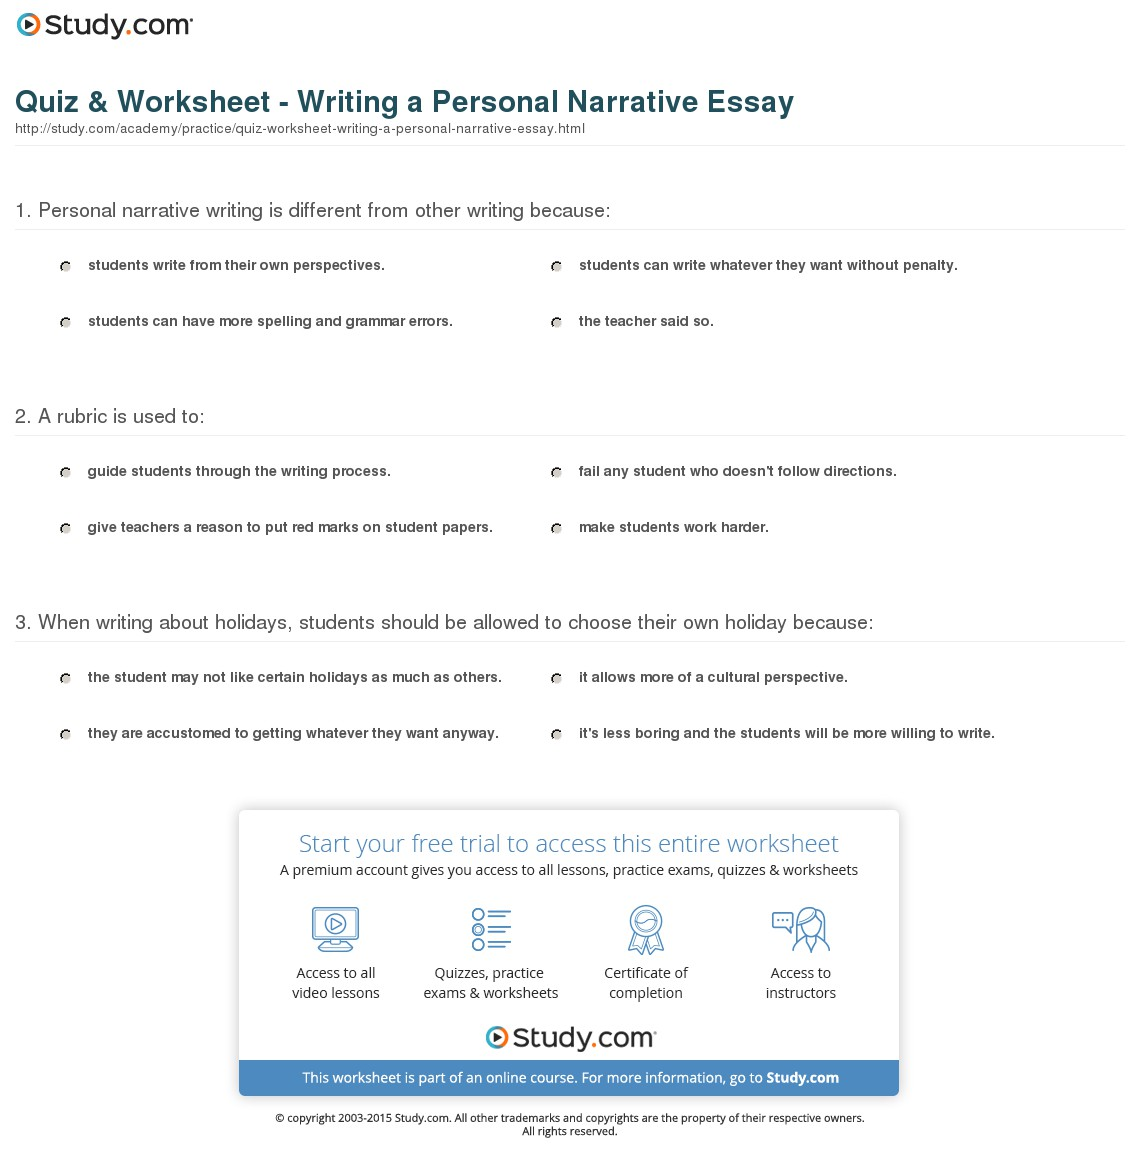 013 Personal Narrative Essay Topics Example Quiz Worksheet Writing Excellent For Middle School High Students Full